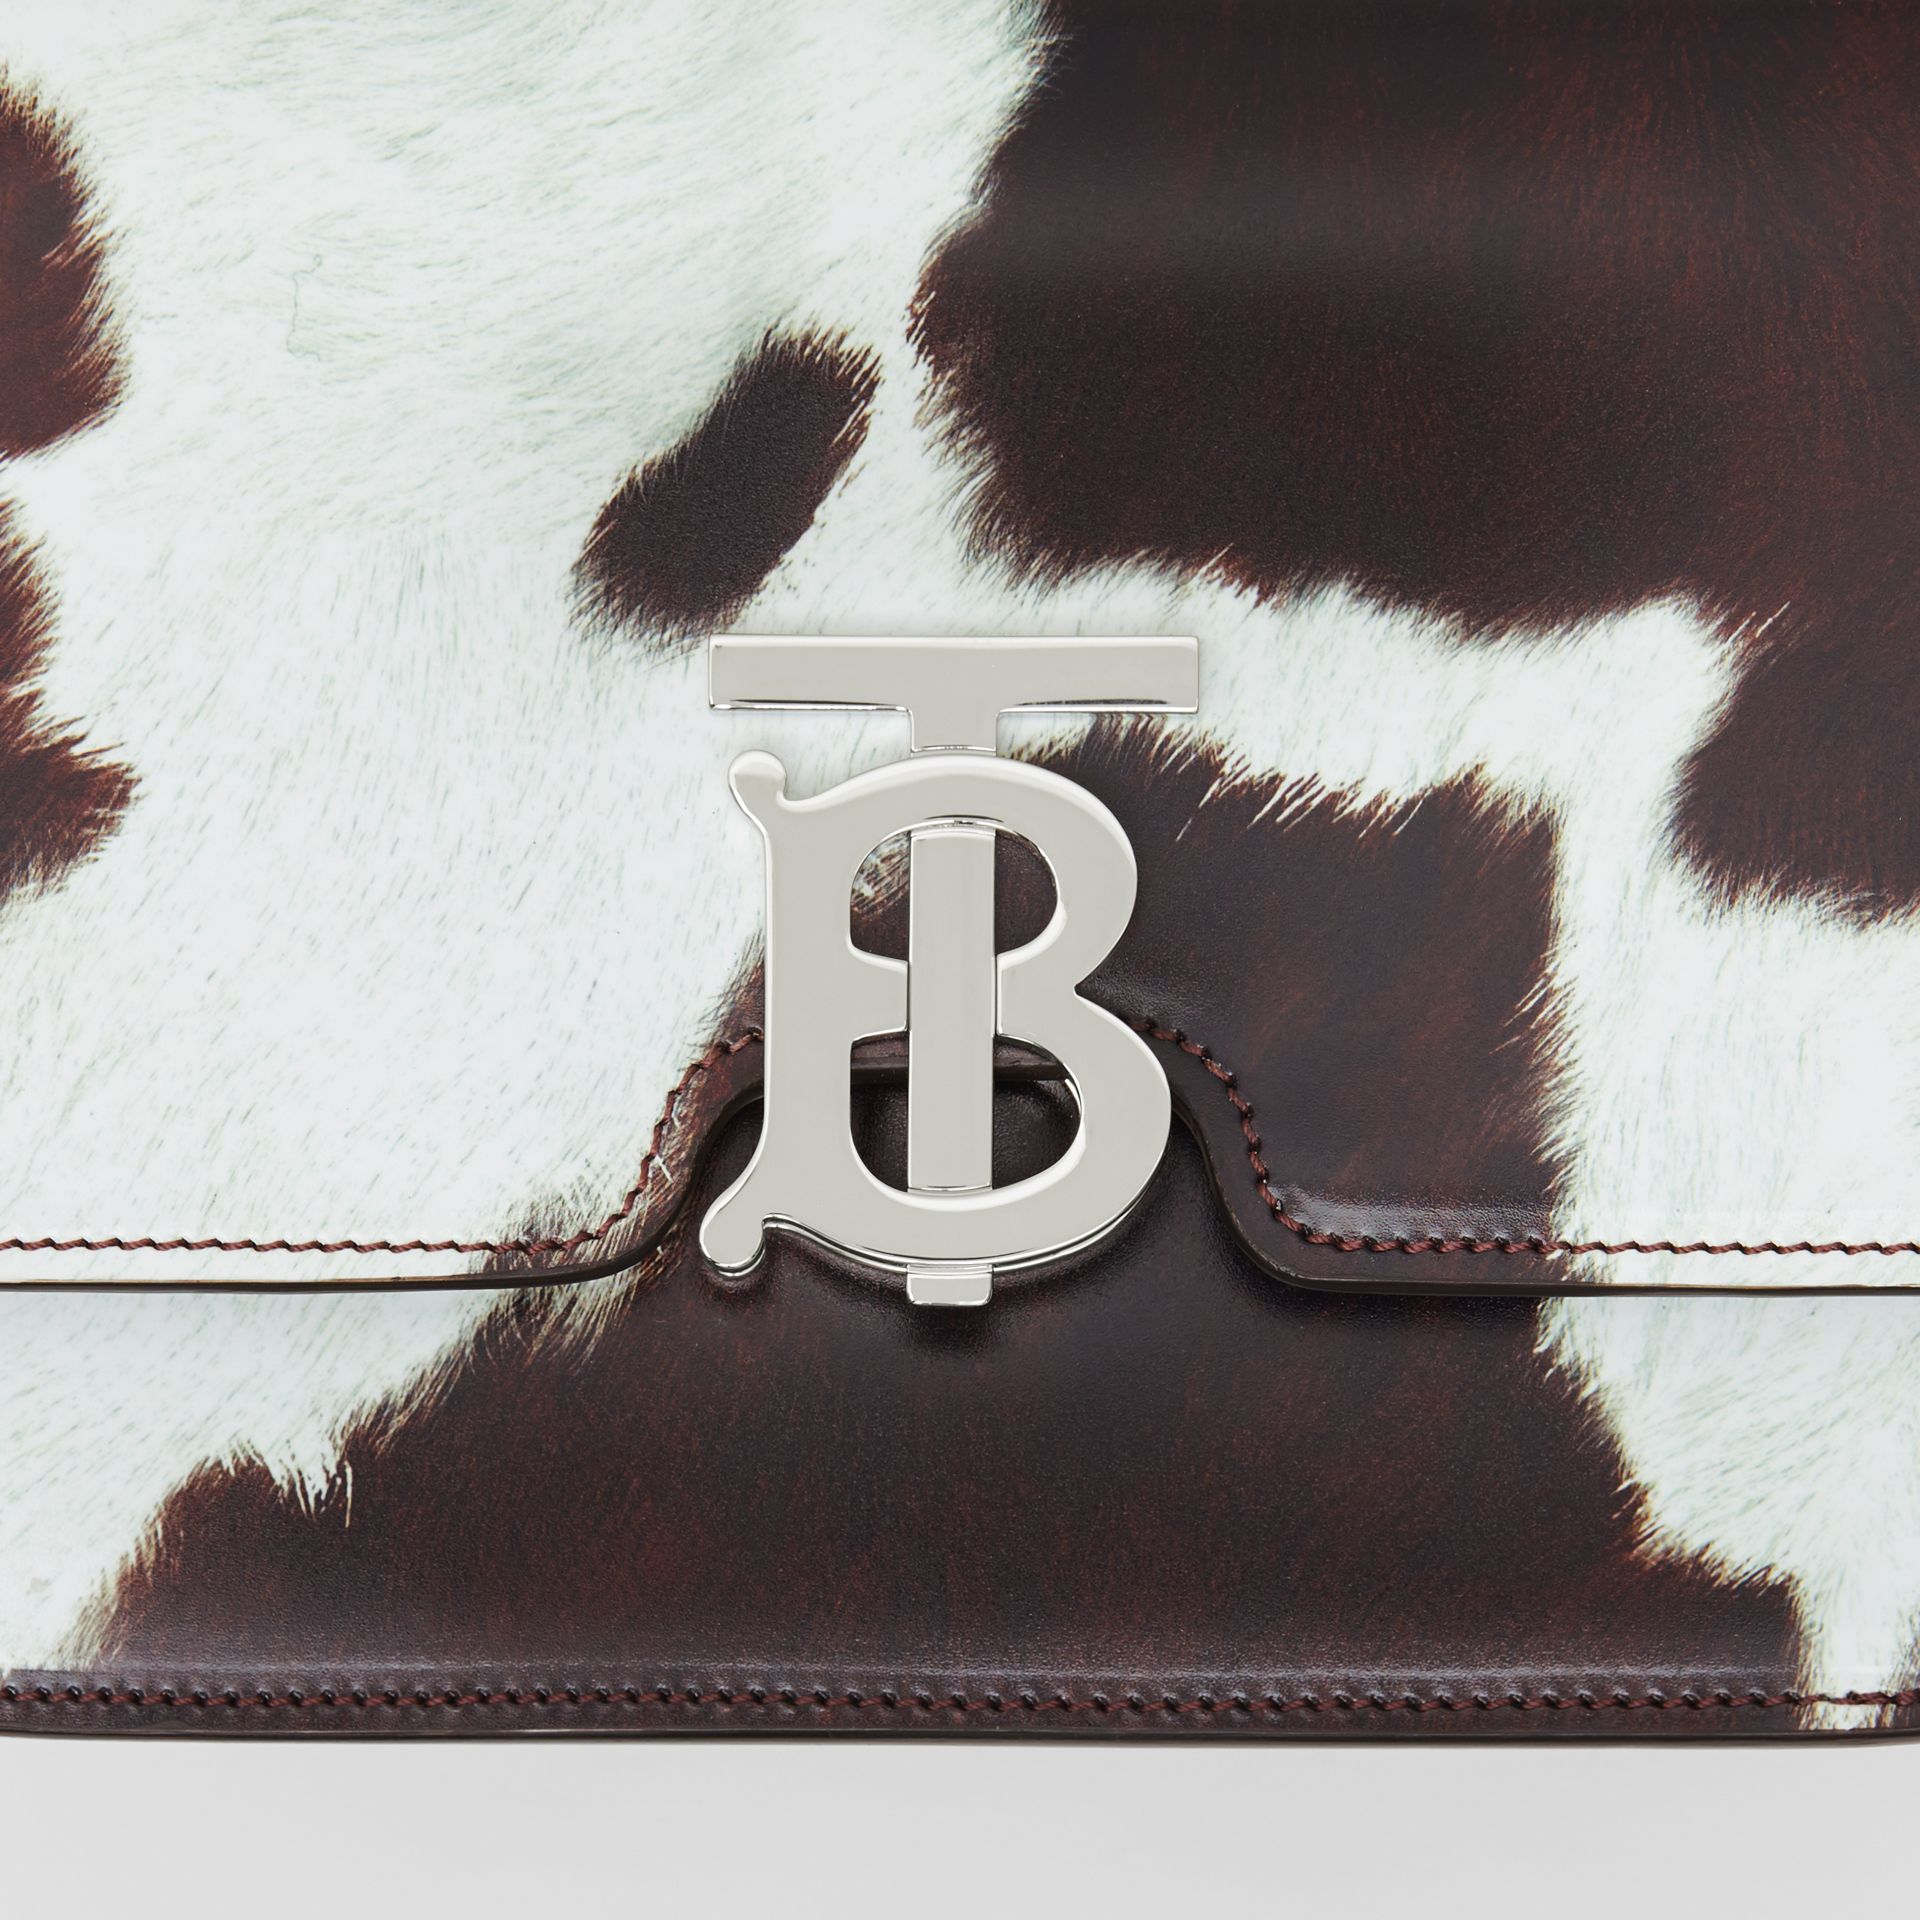 Small Cow Print Leather TB Bag in Mahogany Red - Women | Burberry Australia - gallery image 1